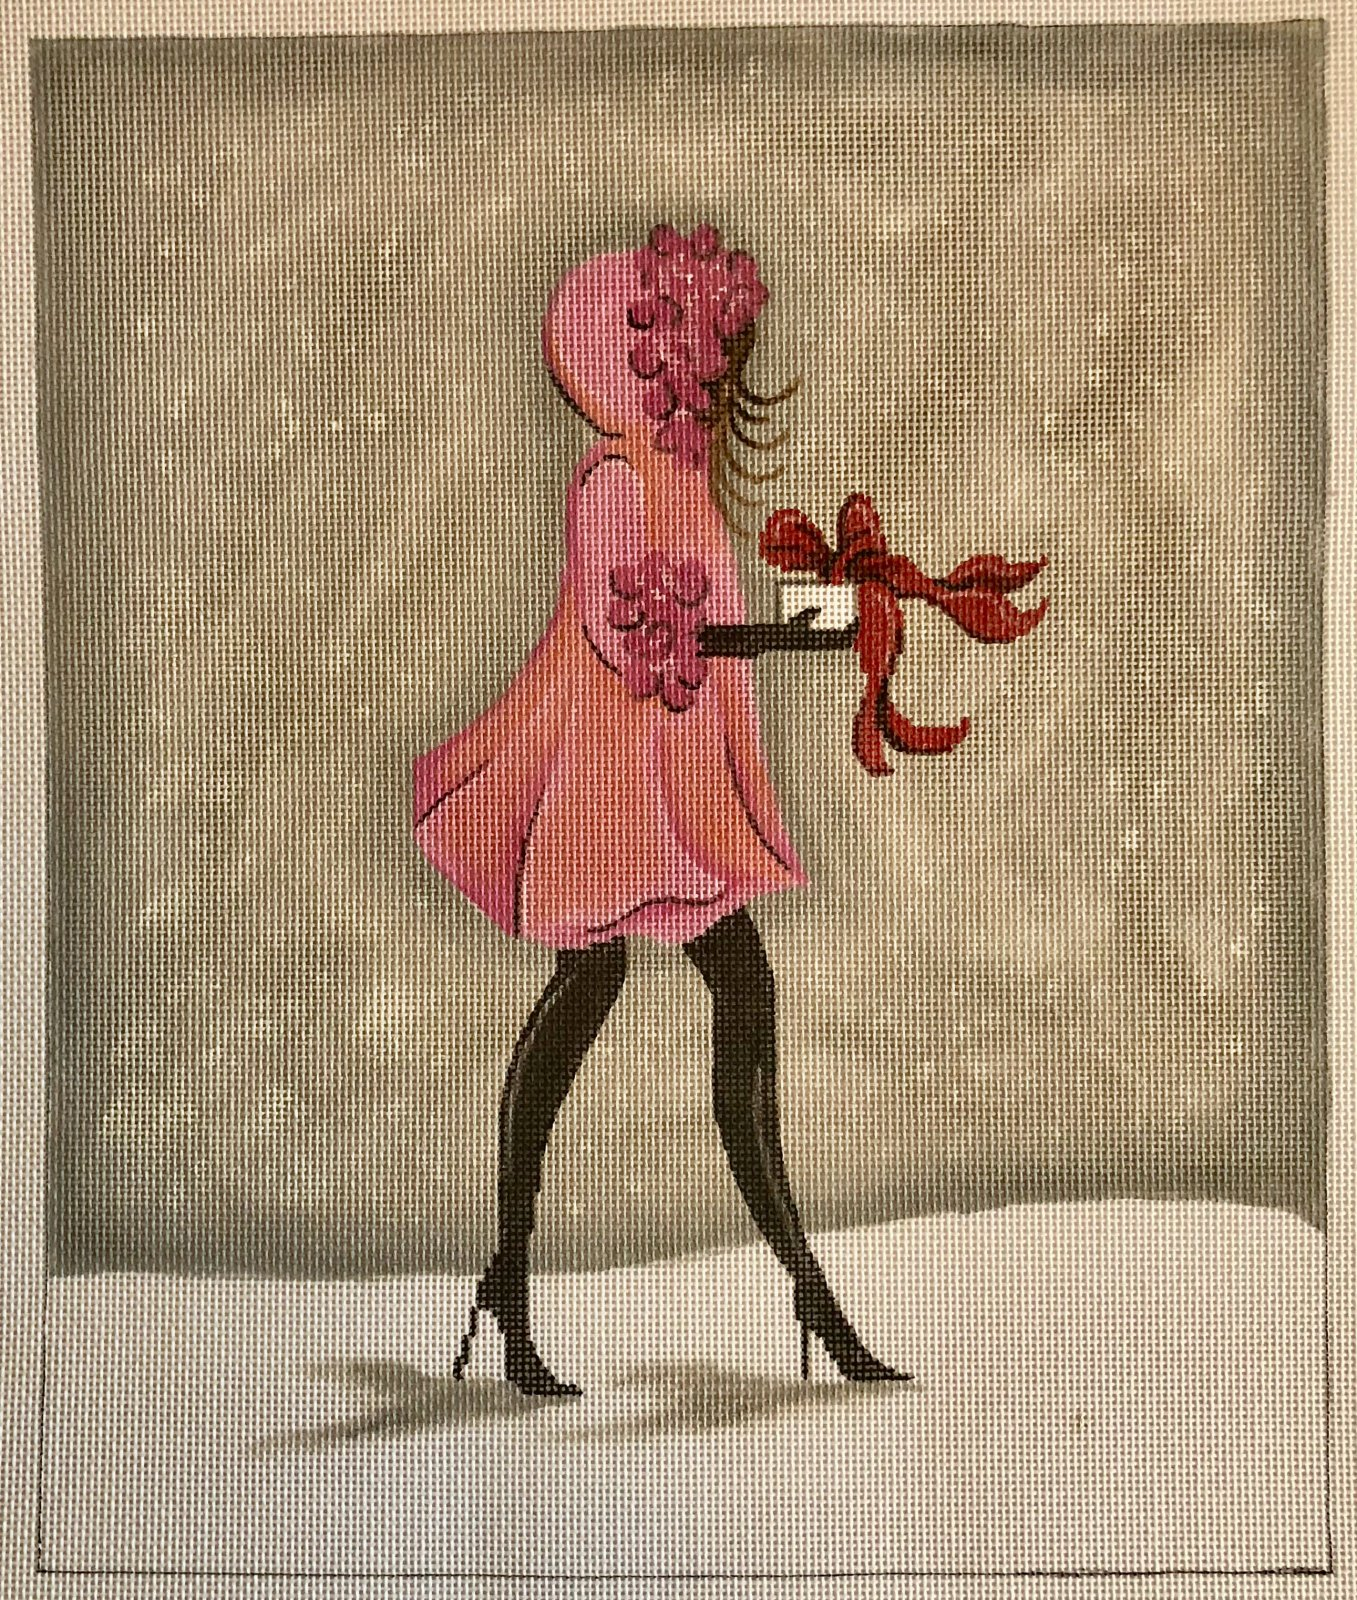 lady in pink coat w gift